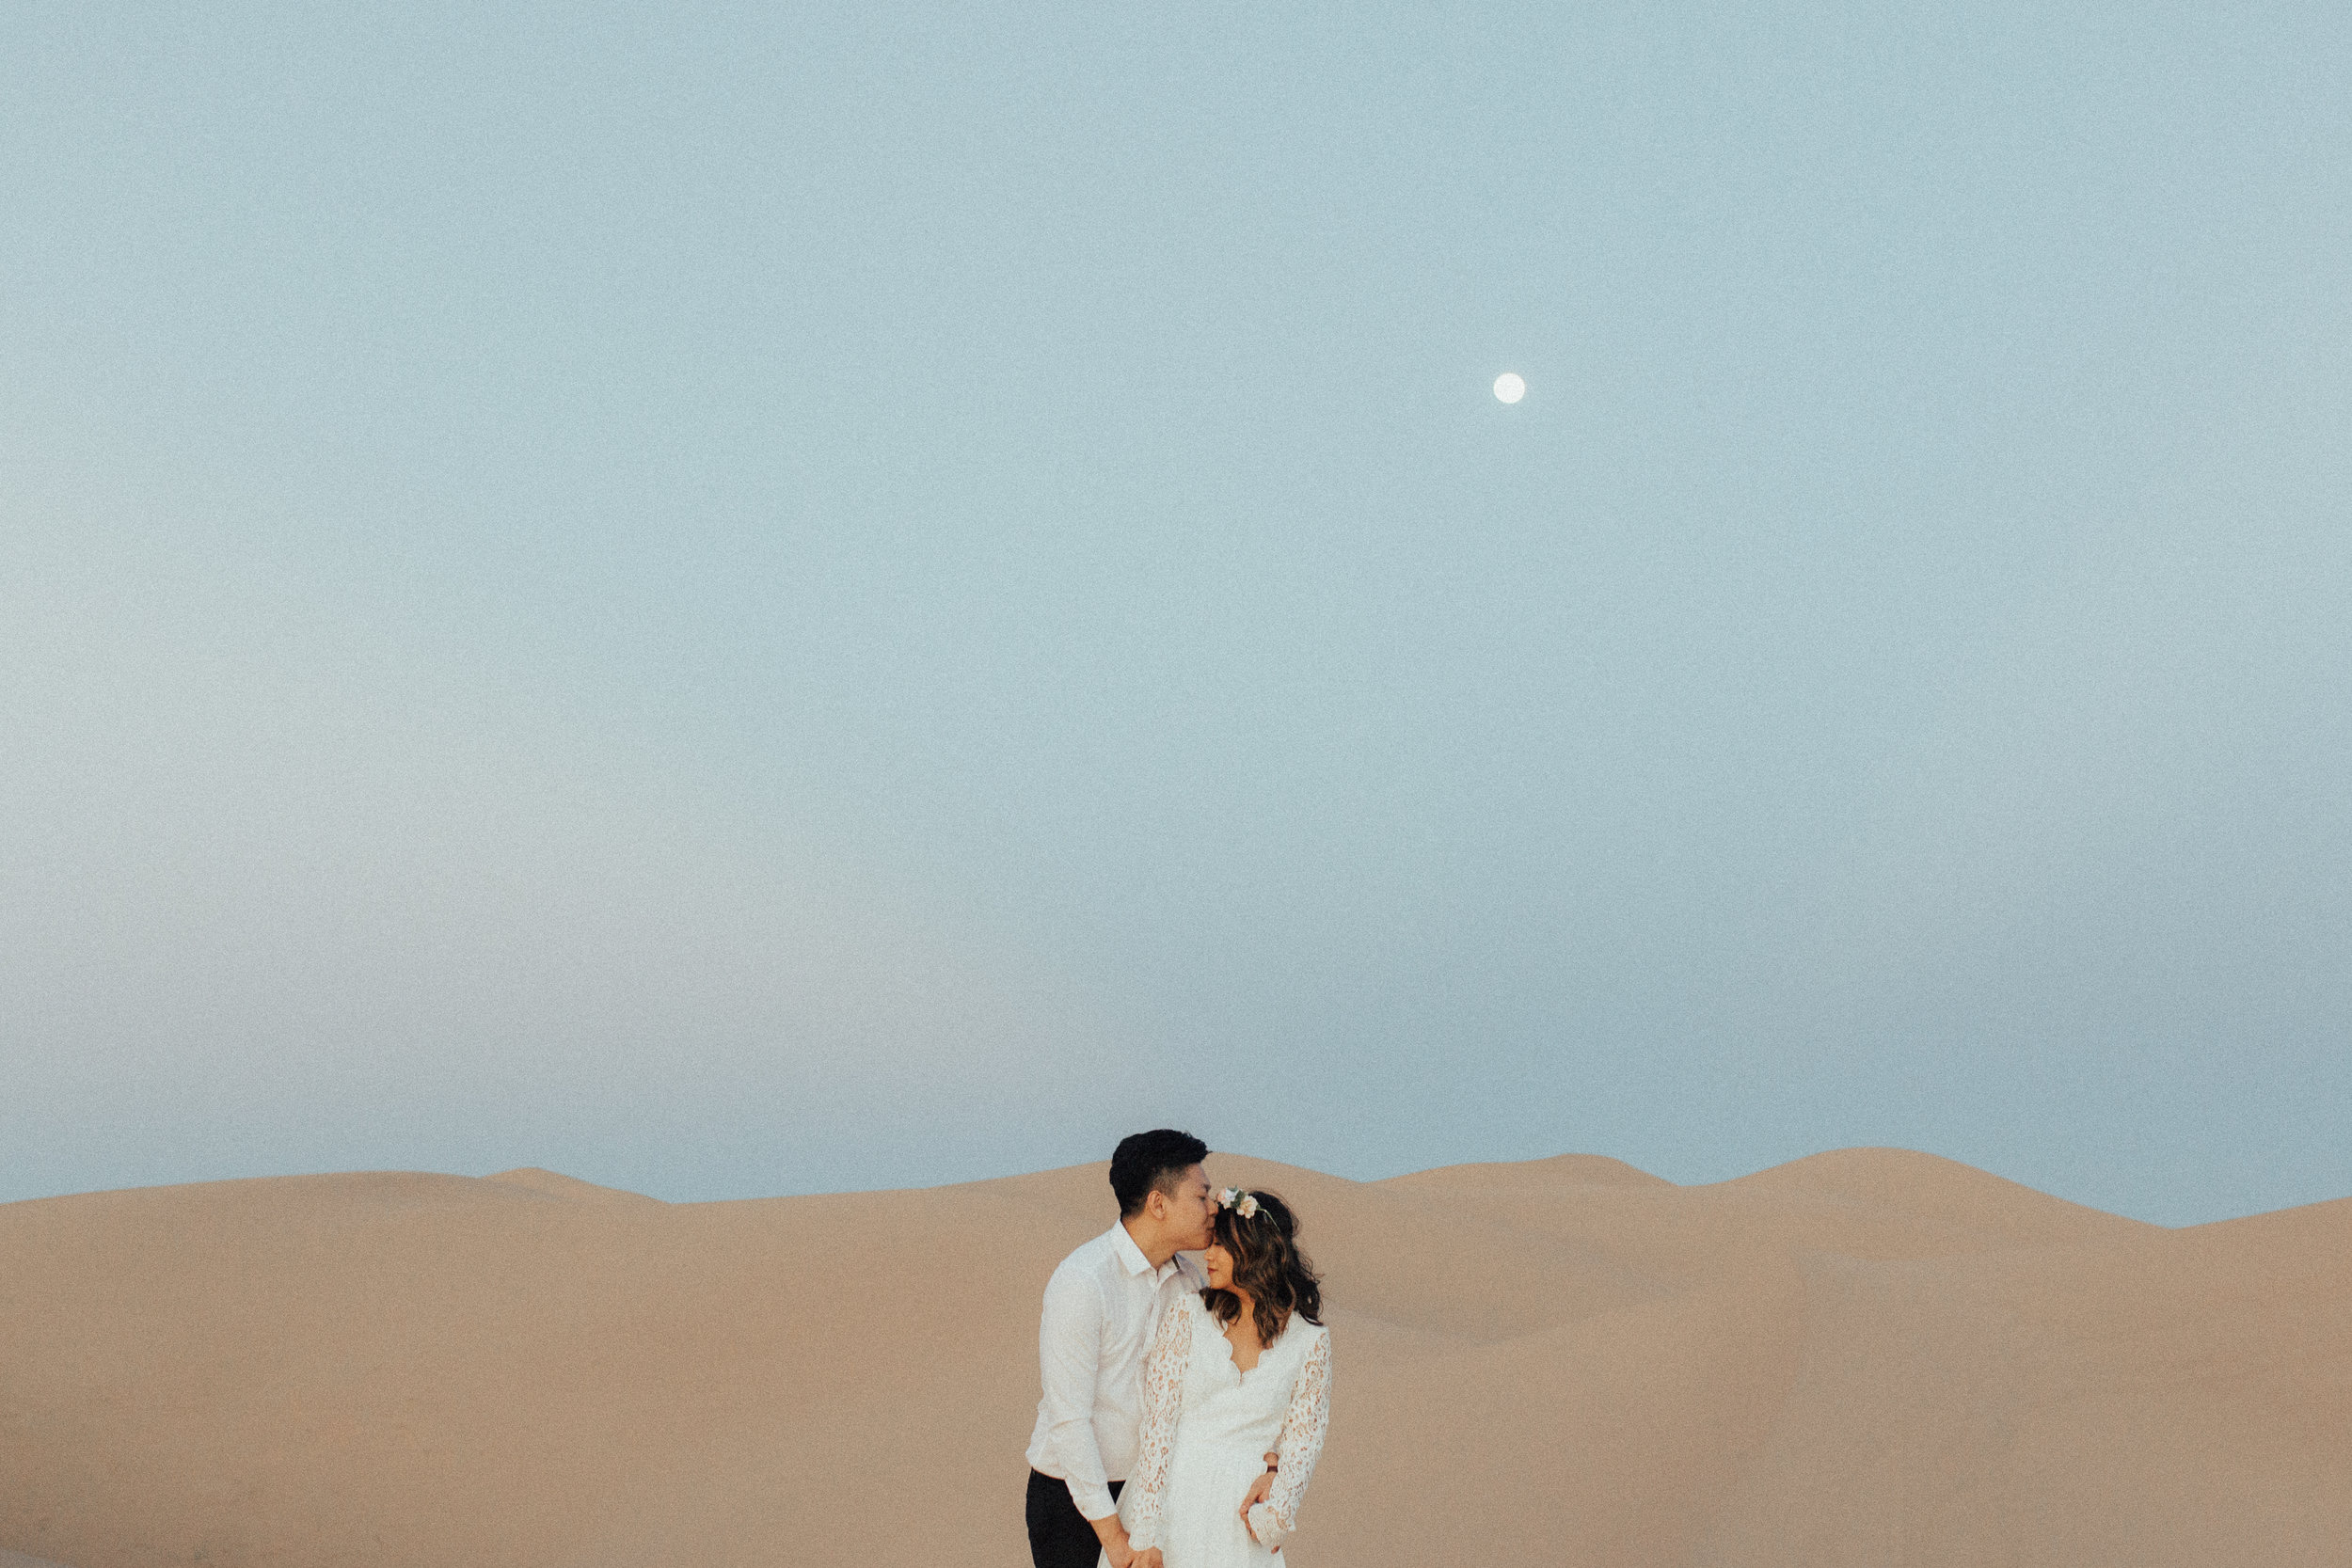 Imperial Sand Dunes Engagement Photographer Rachel Wakefield Glamis Sand Dunes Engagement Photography Joshua Tree Su x Ryan-5.jpg